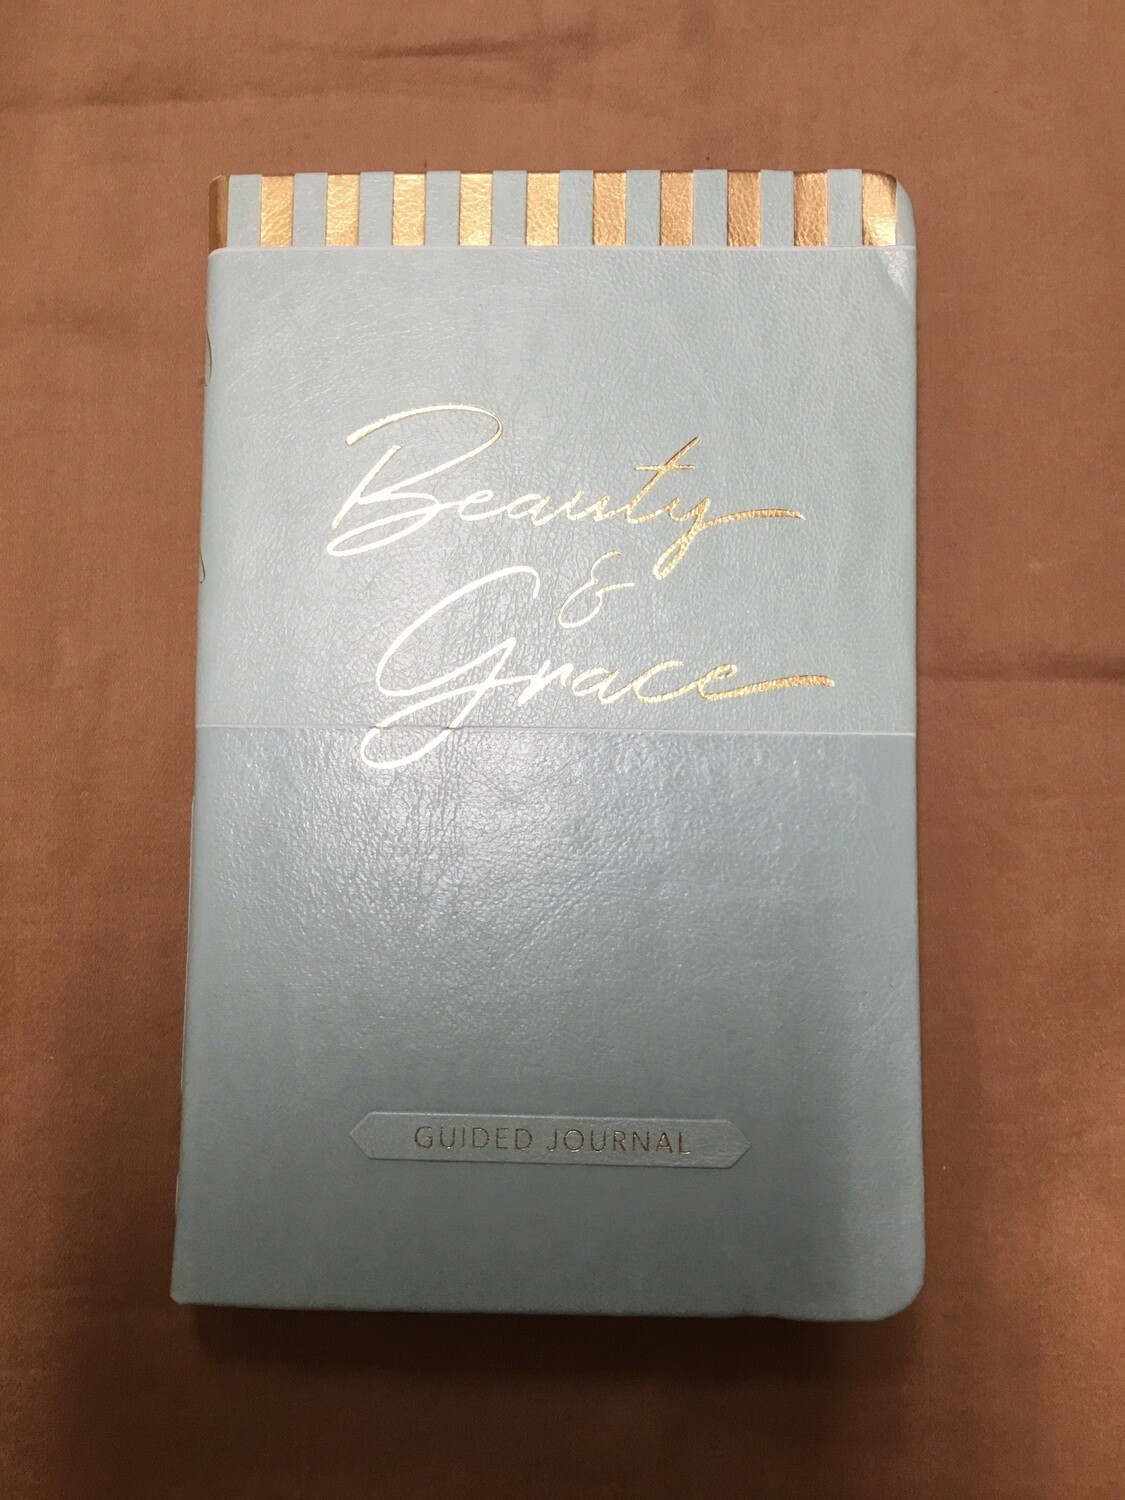 Beauty & Grace journal